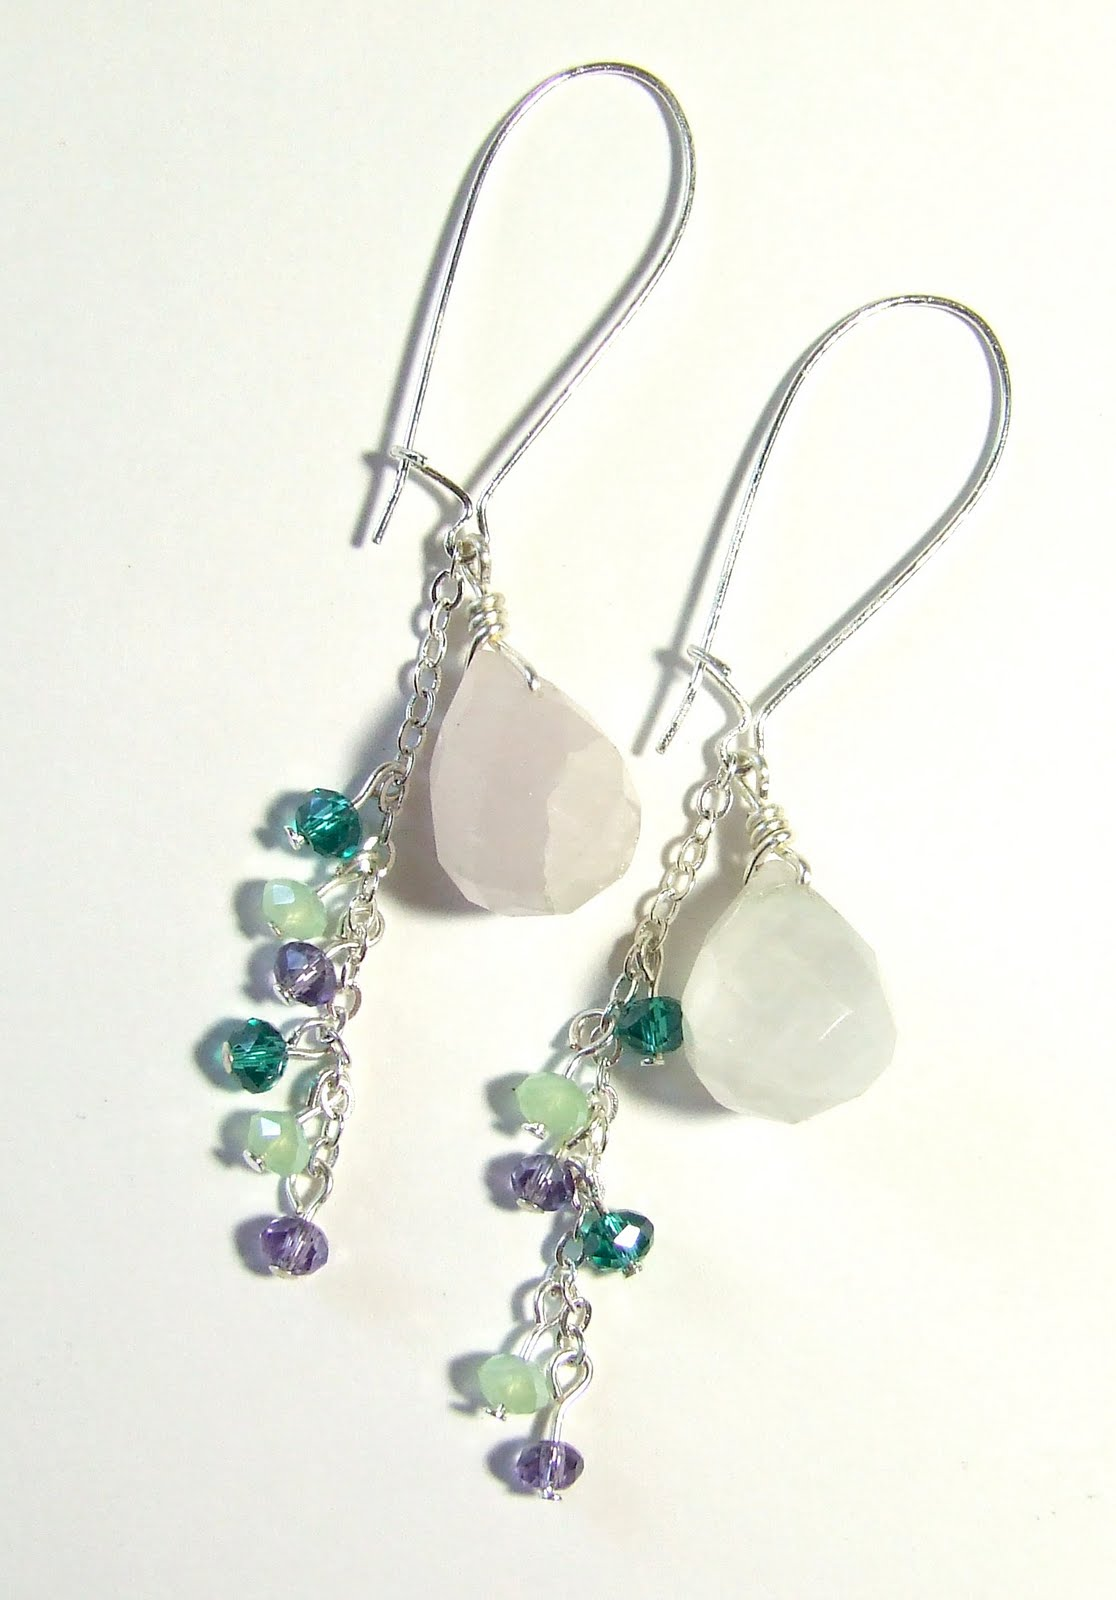 Bead Up The Journey Of Handmade Jewelry Earring Ideas Inspiration